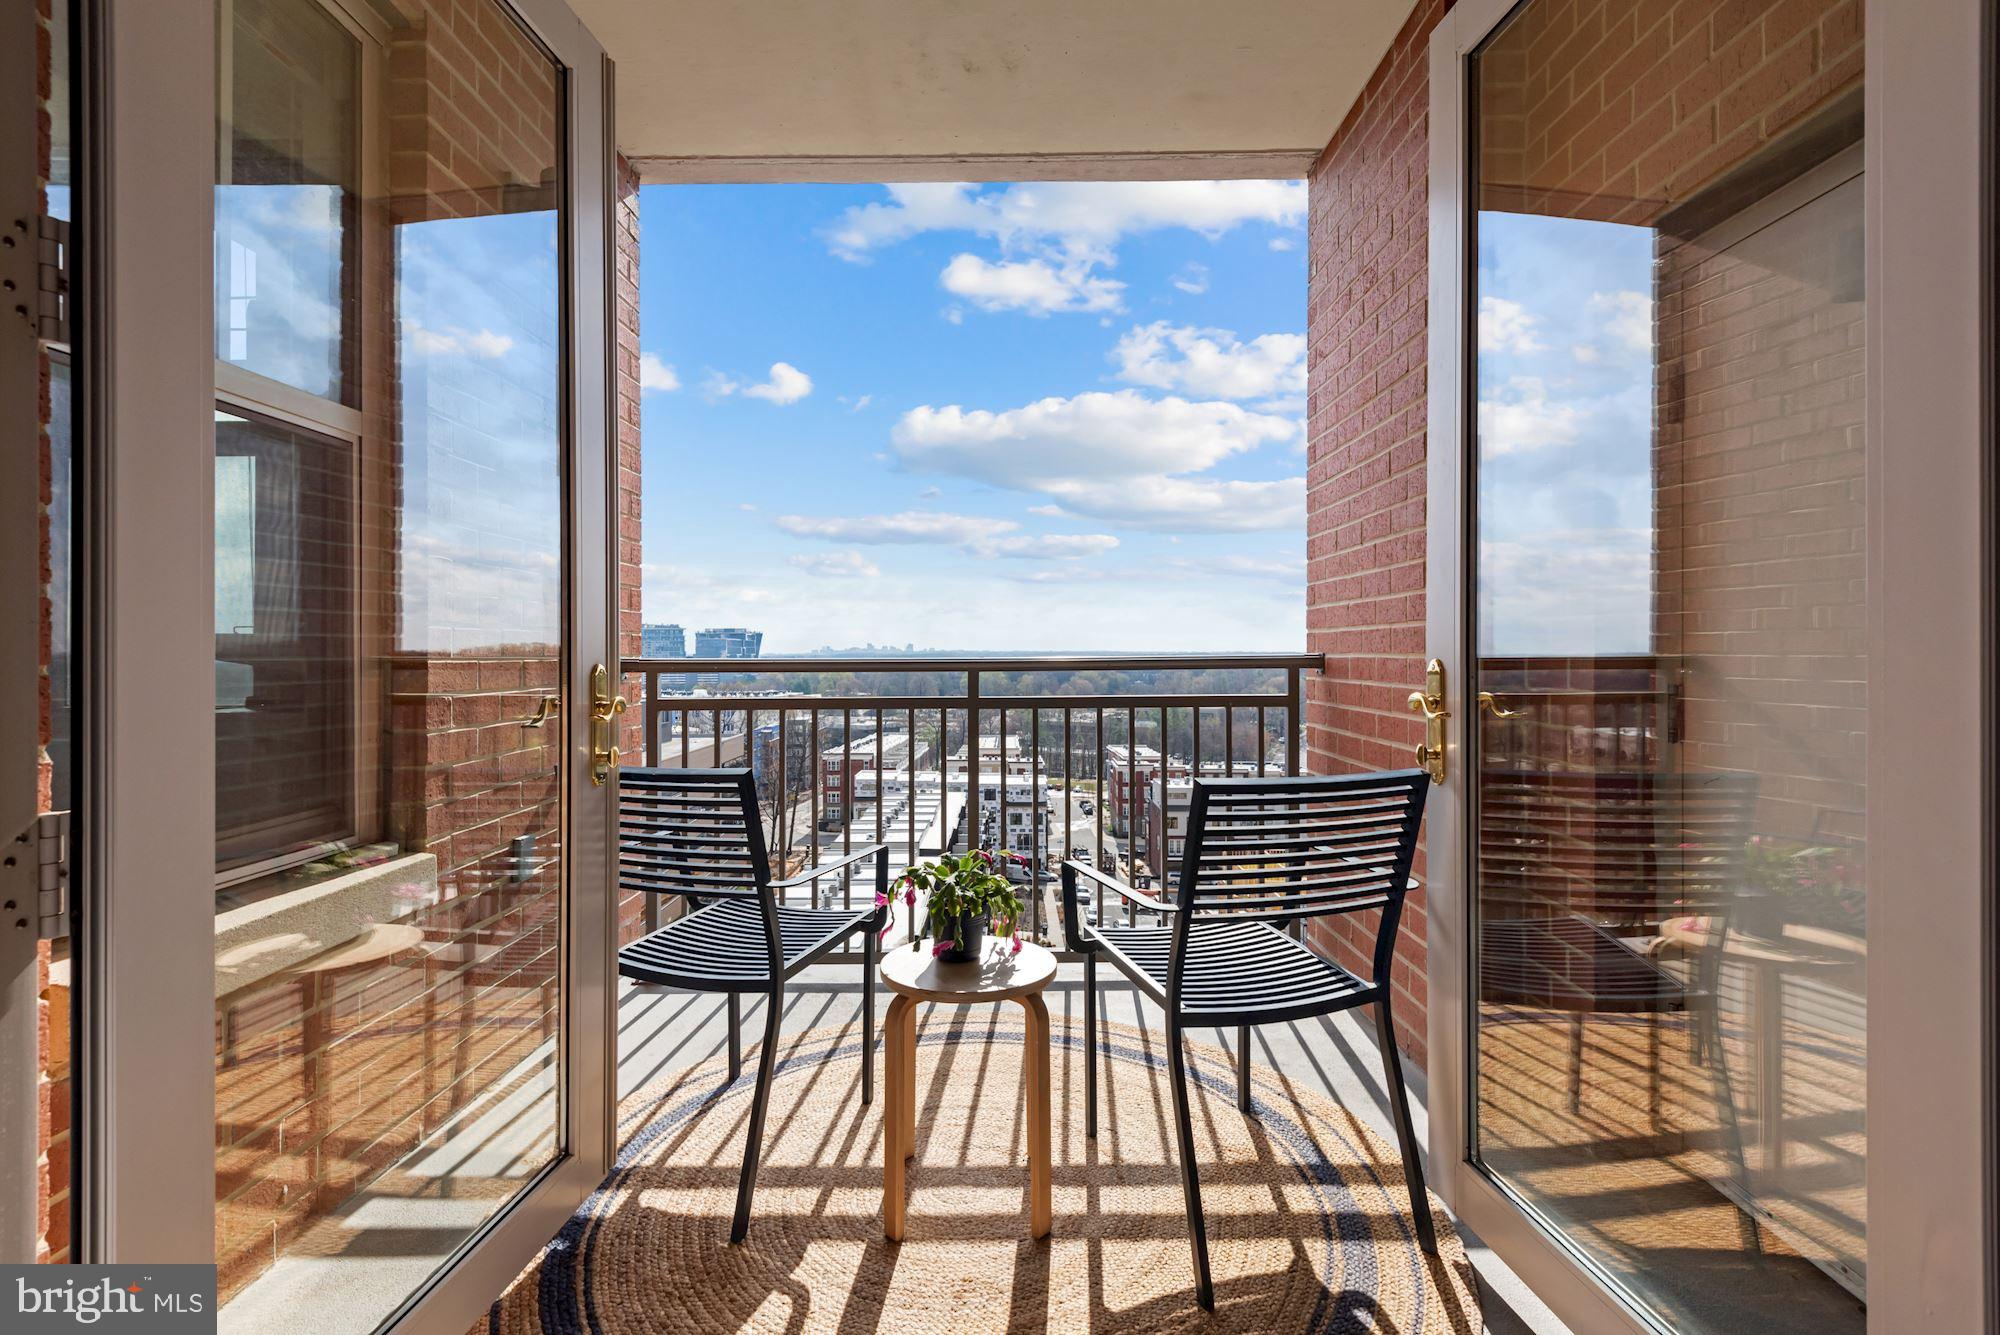 Enjoy your morning coffee while watching gorgeous sunrises from the 9th-floor balcony of this FULLY renovated home.  No expense OR imagination was spared from the custom cabinetry installed in the dining area to the beautiful NEW kitchen and gorgeous UPDATED bathroom.  Even the entry has a decorator's touch with its designer wallpaper.  This home is the definition of turn key! The Mercer enjoys many amenities, is within walking distance of TWO metro stops and is located next to new $1m townhomes.  Come see for yourself why this one stands out from all the rest!  Unit can be bought turnkey with all furnishings and decor for an additional fee.